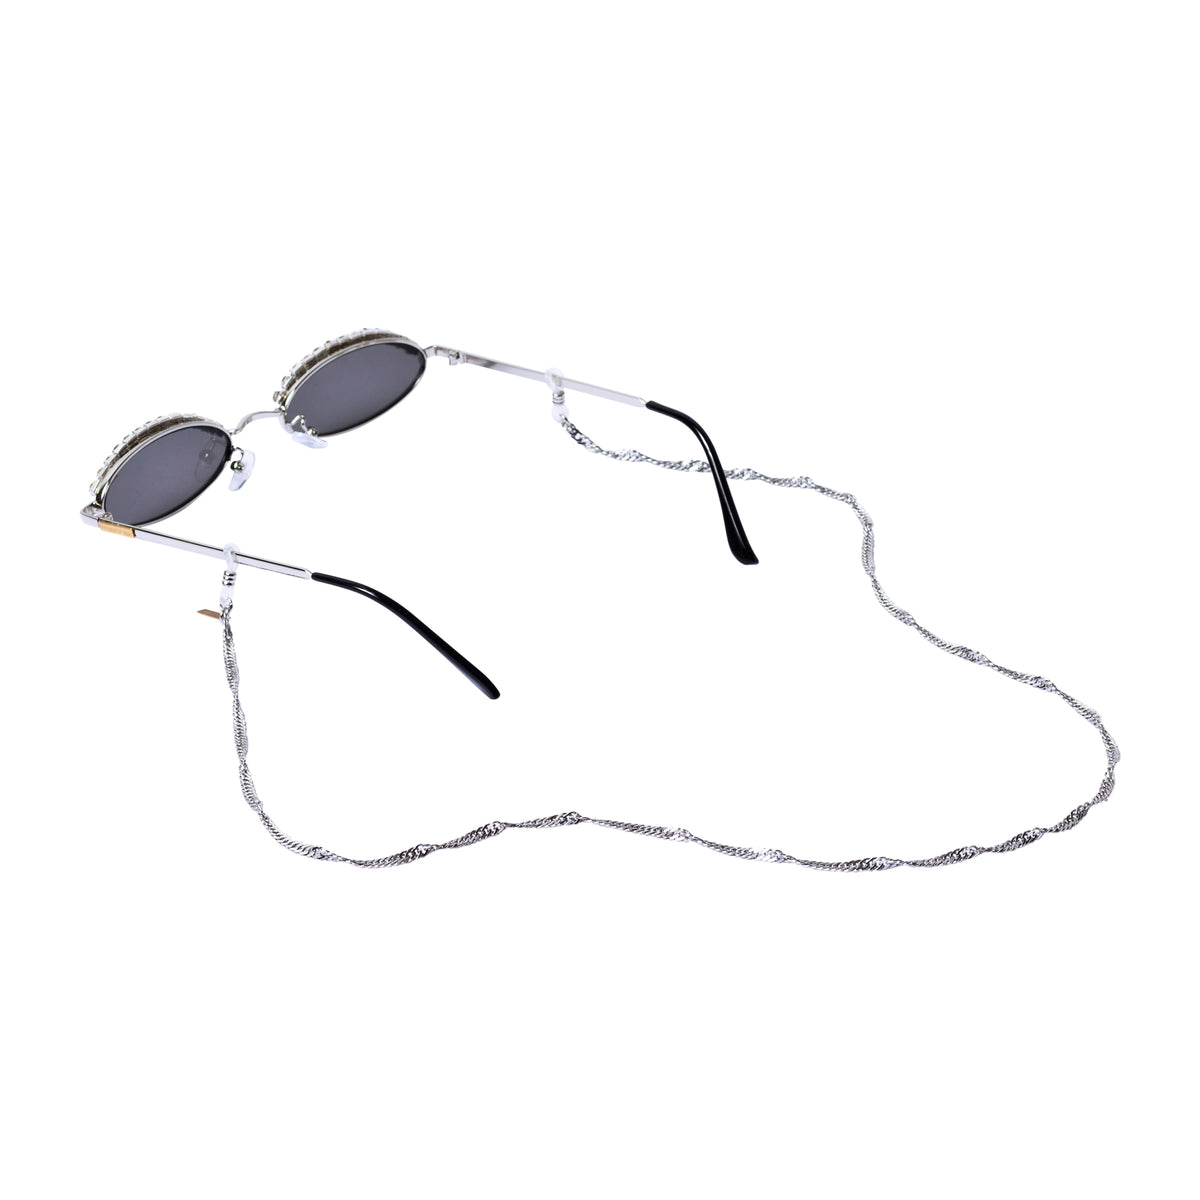 TWISTED SUNNIES CHAIN IN SILVER  SUNNIES CHAIN TNEMNRODA- NRODA